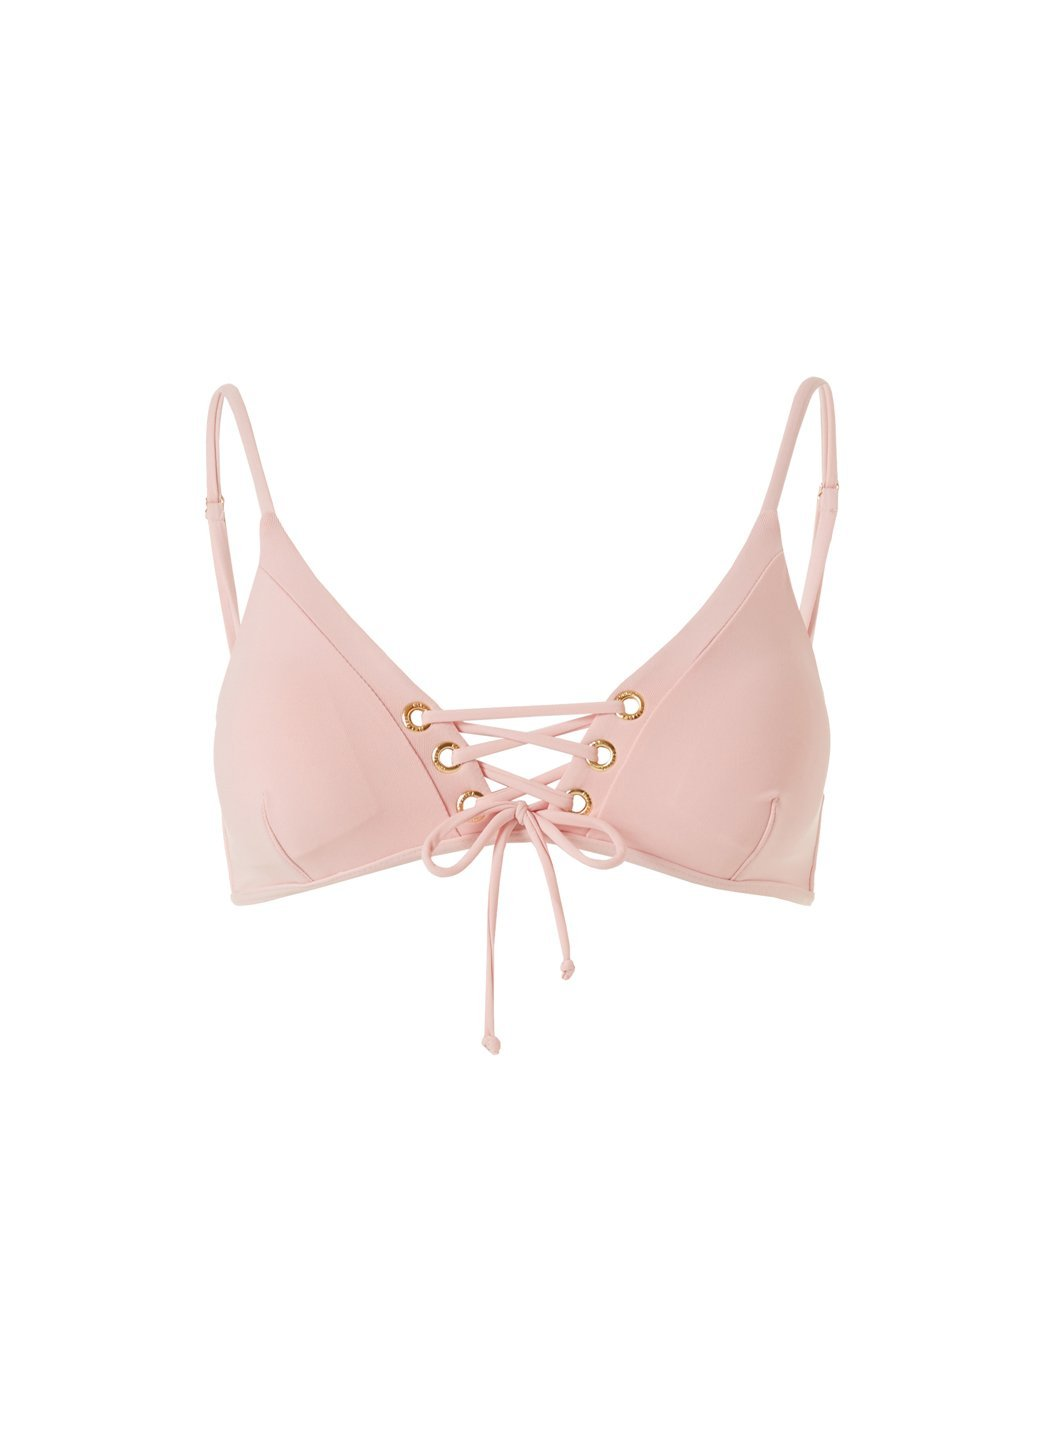 marrakech blush bikini top